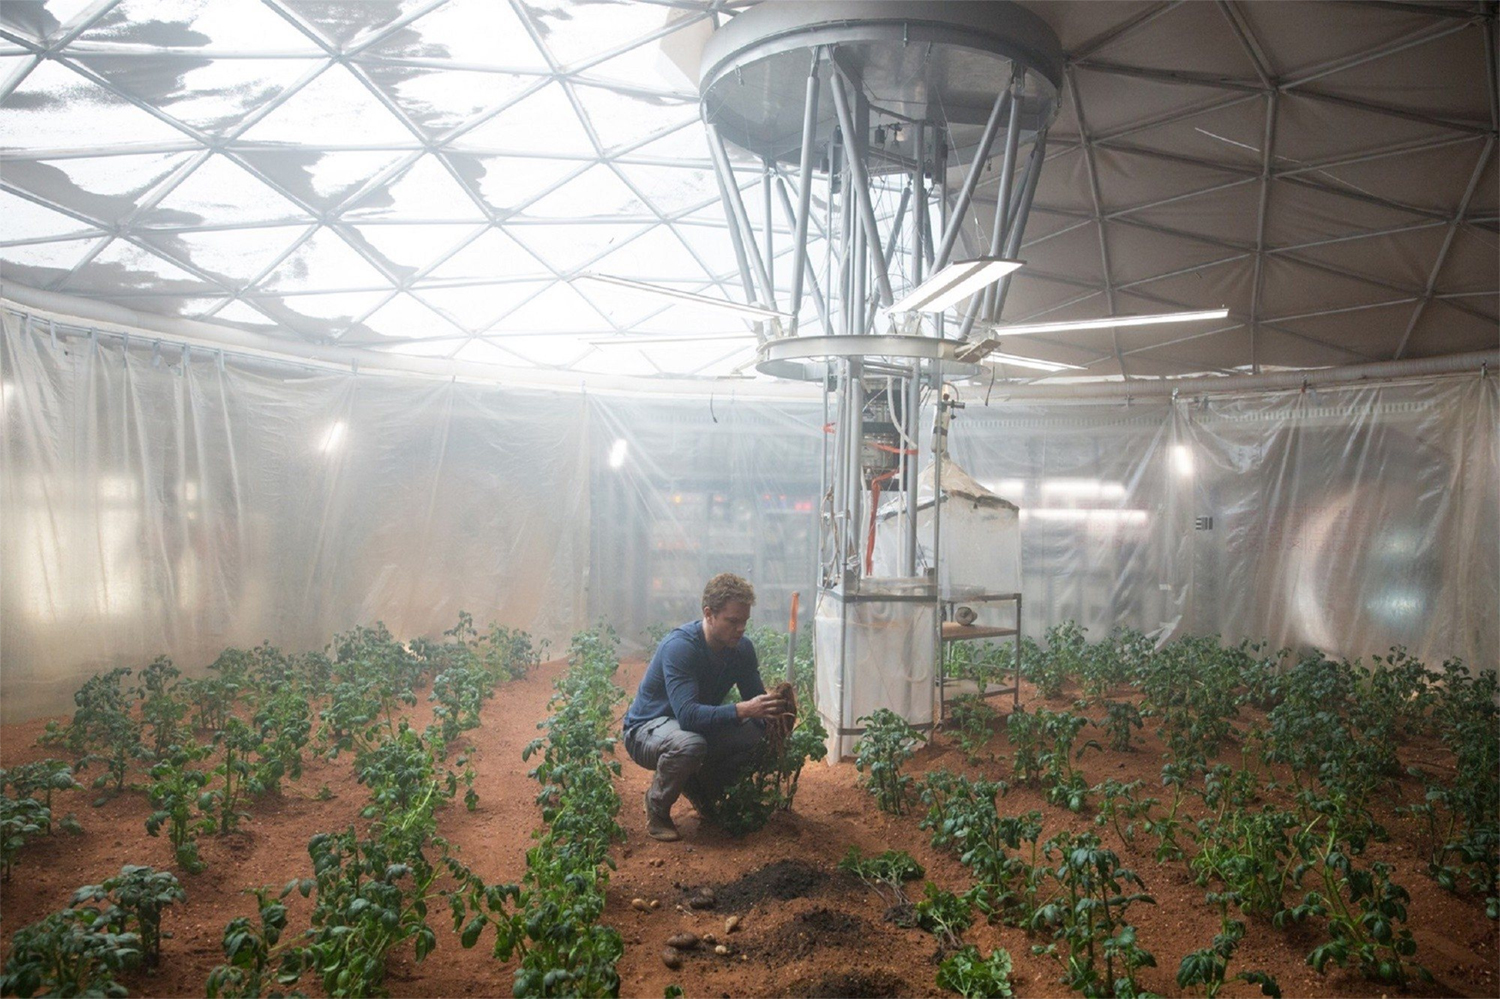 """Astronaut Mark Watney harvests his potatoes on Mars in 2015 science fiction film """"The Martian."""" 20th Century Fox"""